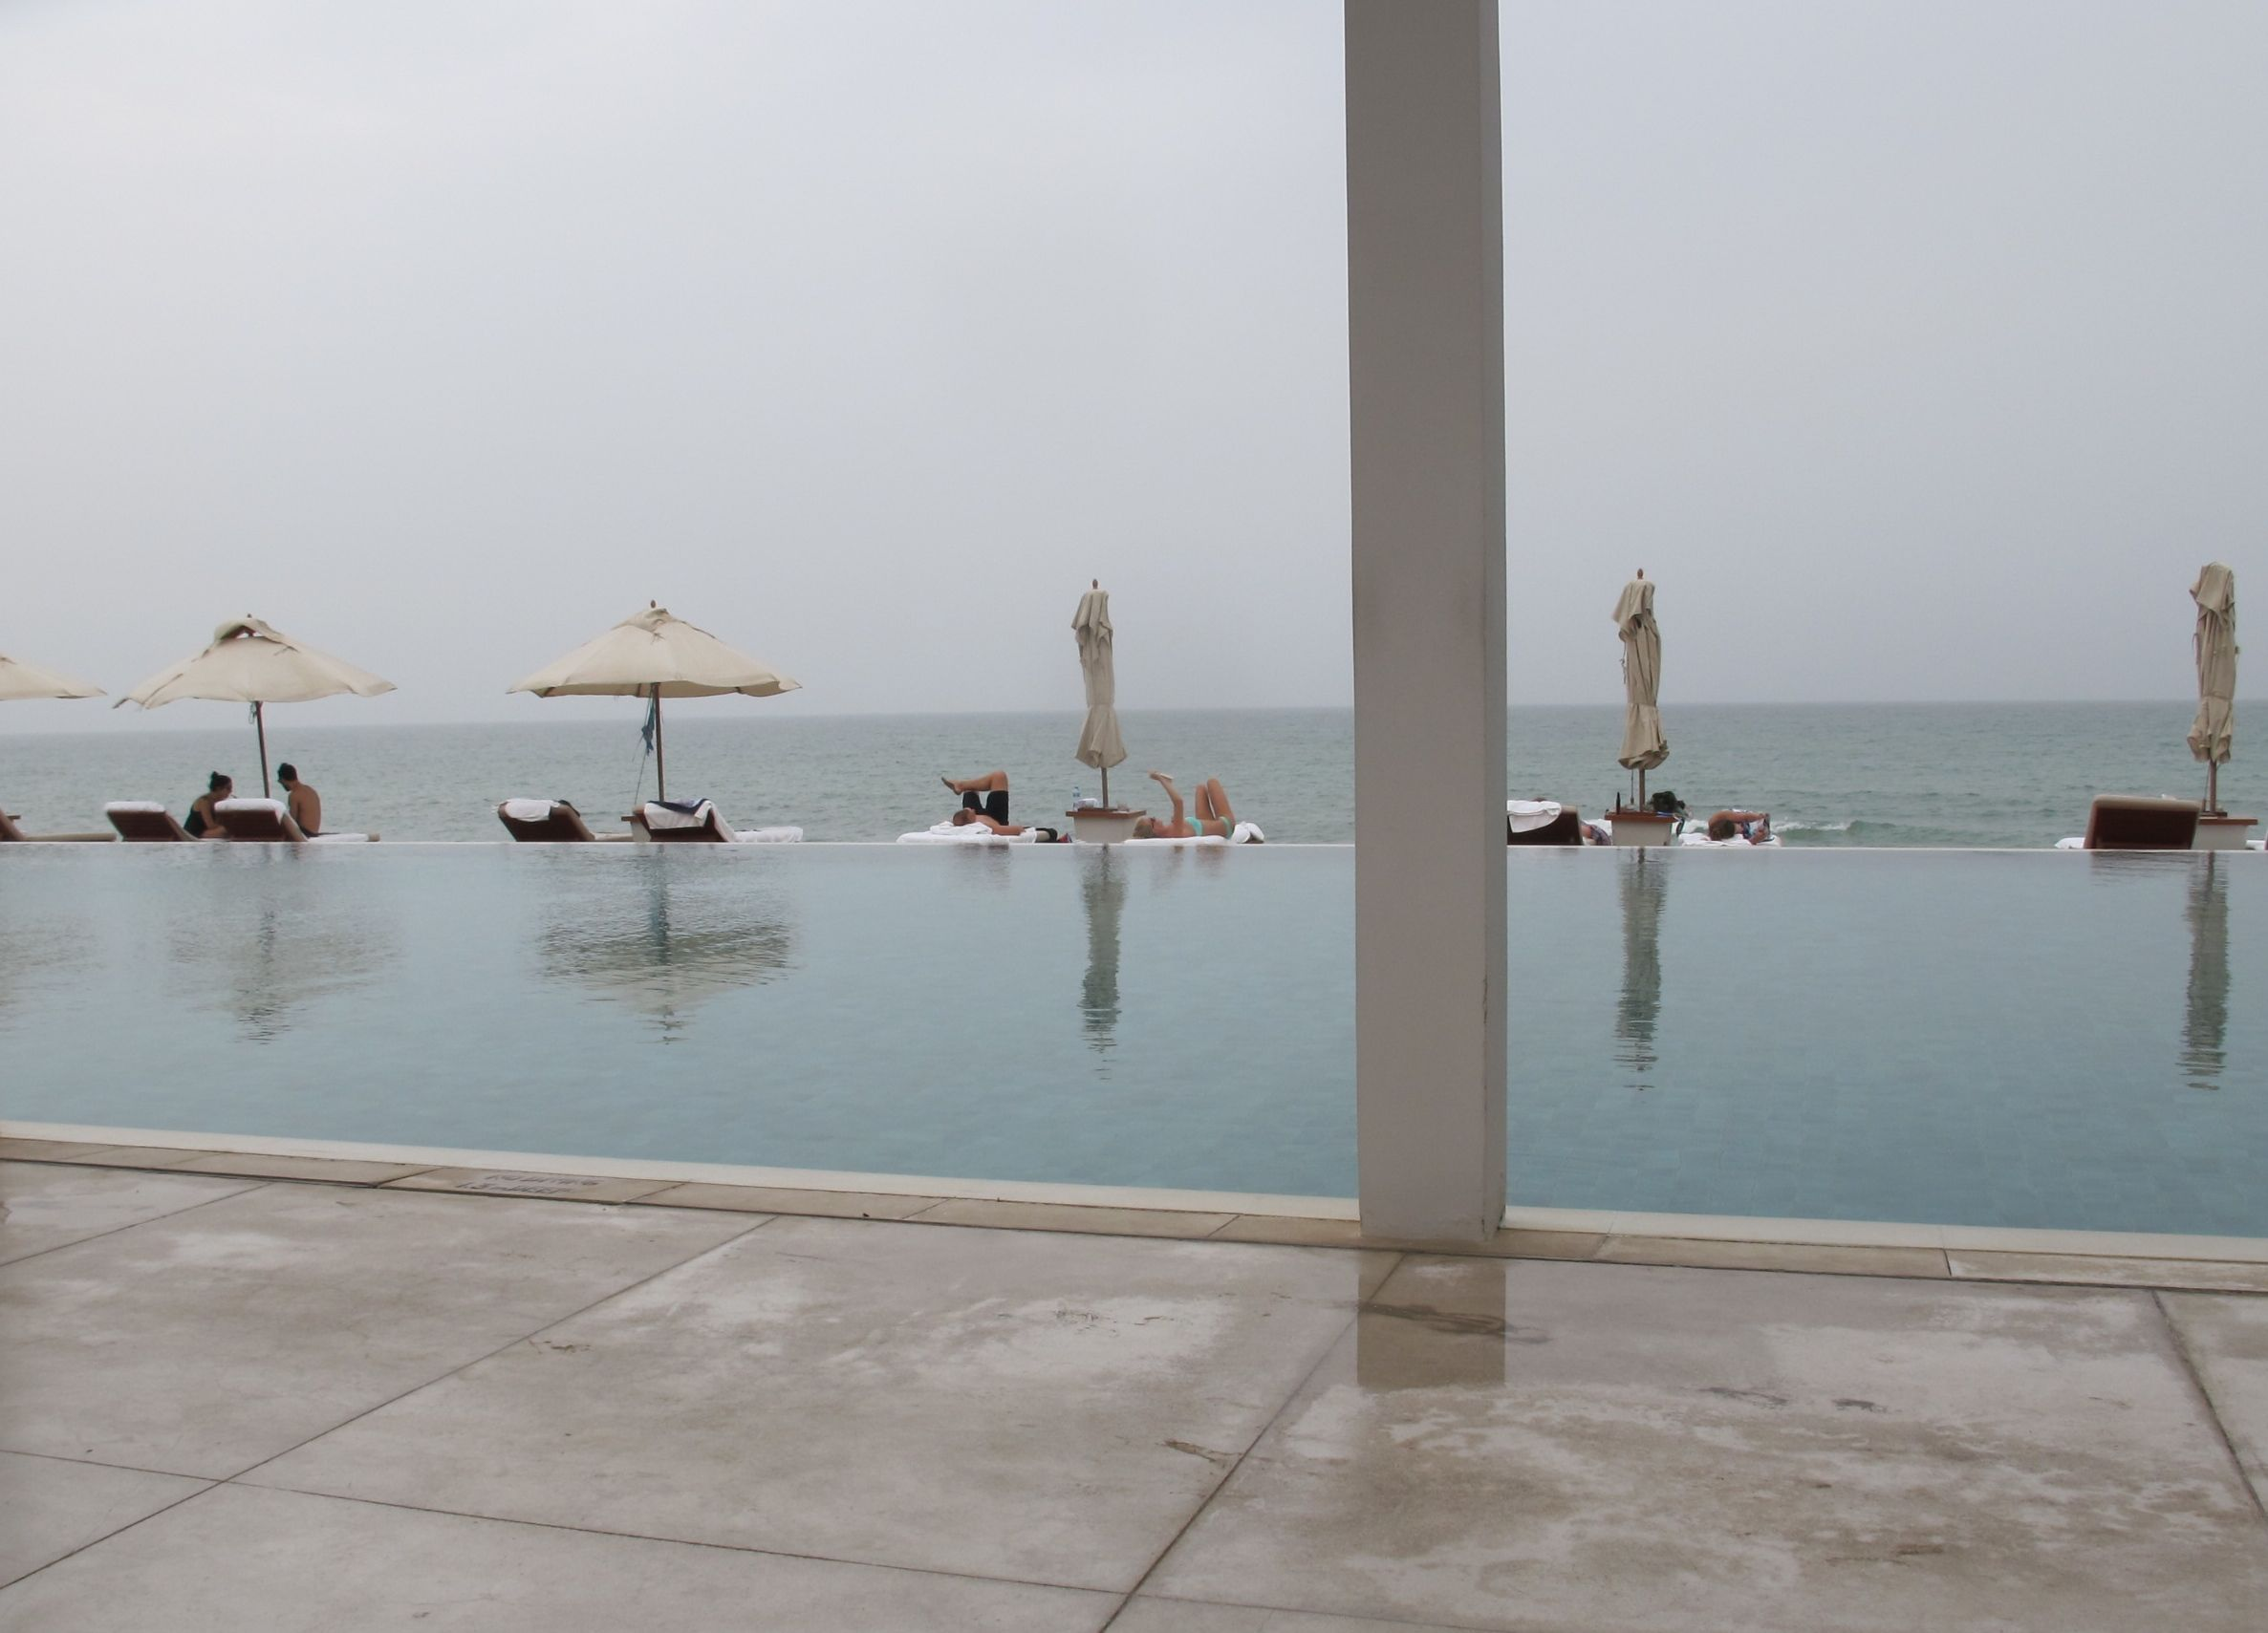 An overcast afternoon at the hotel's beach: For me, it was a perfect beach day.